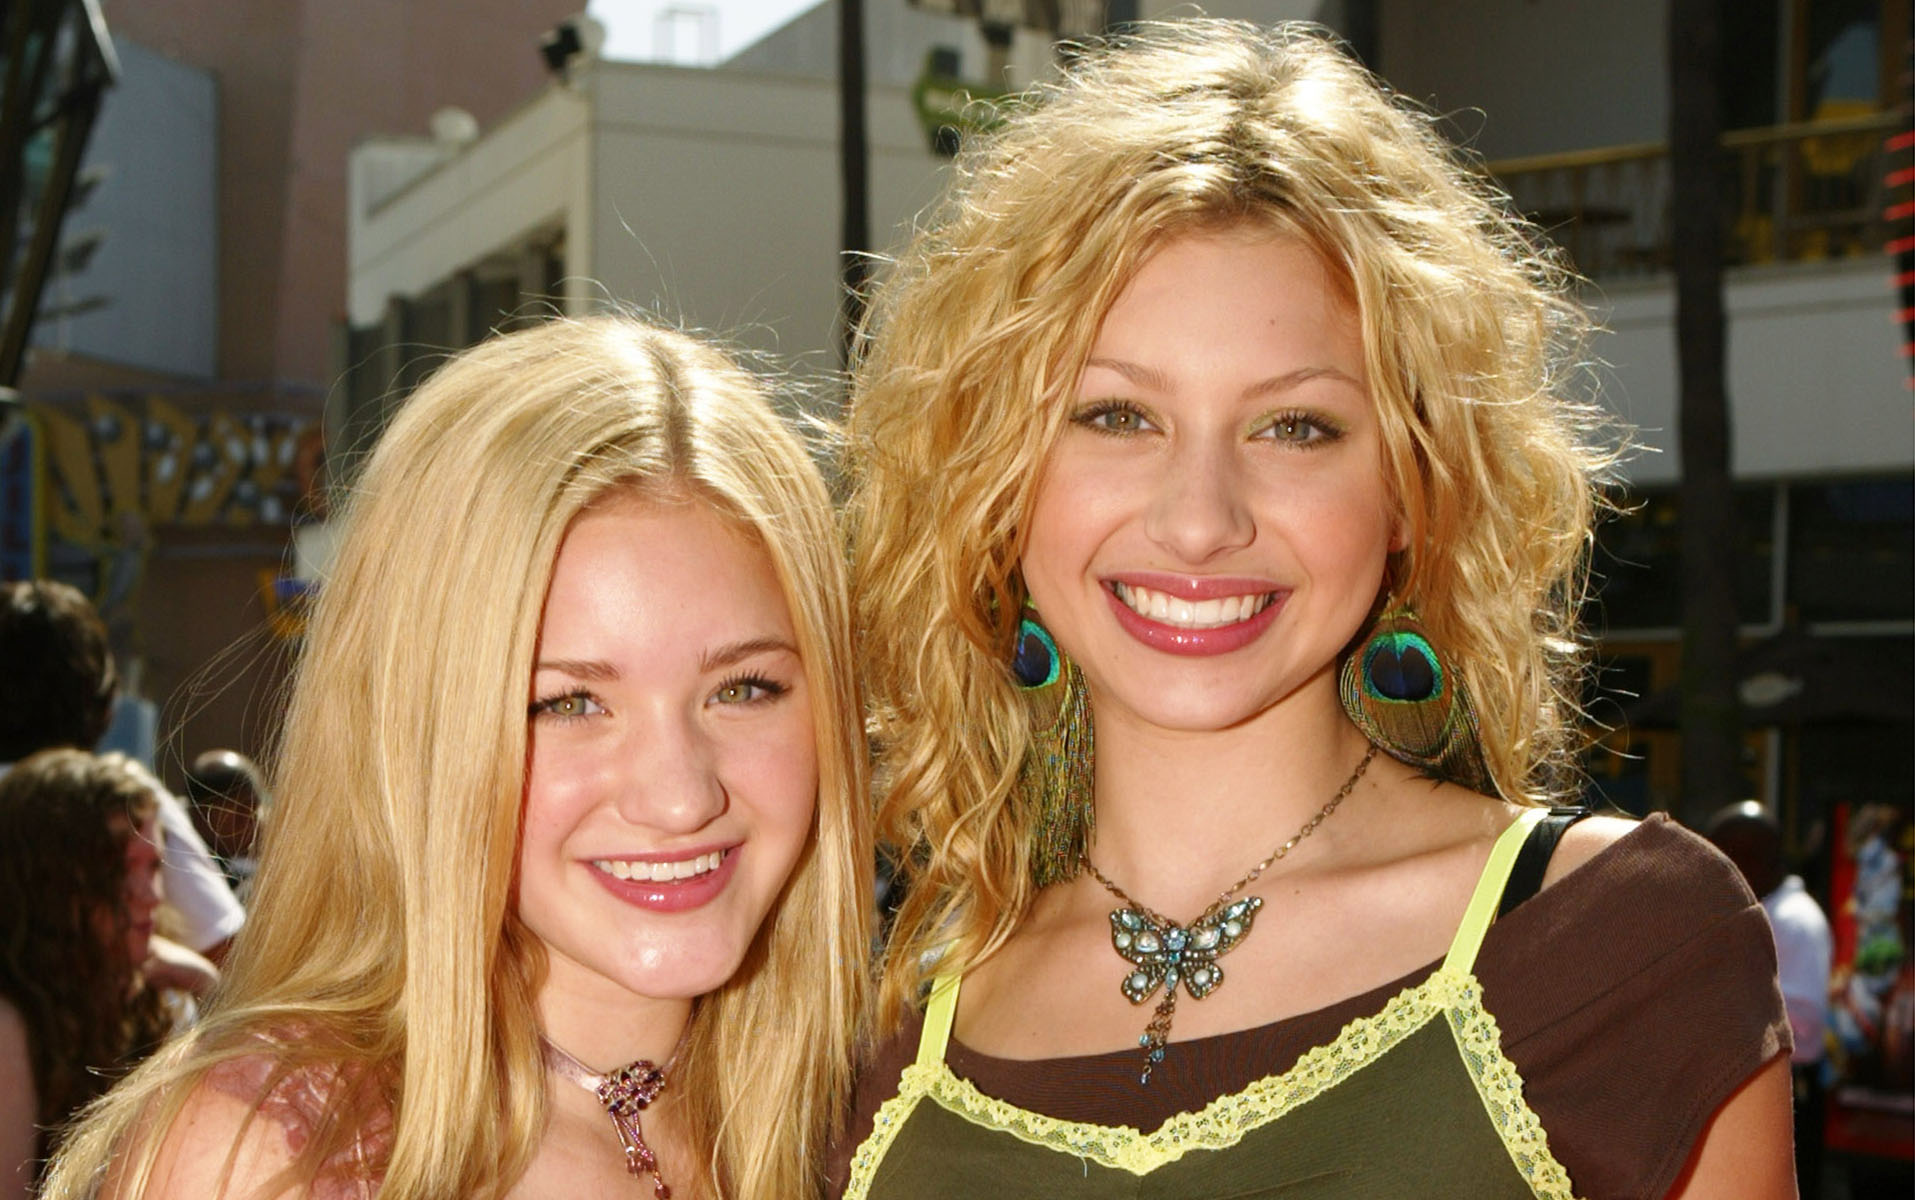 aly and aj - photo #14